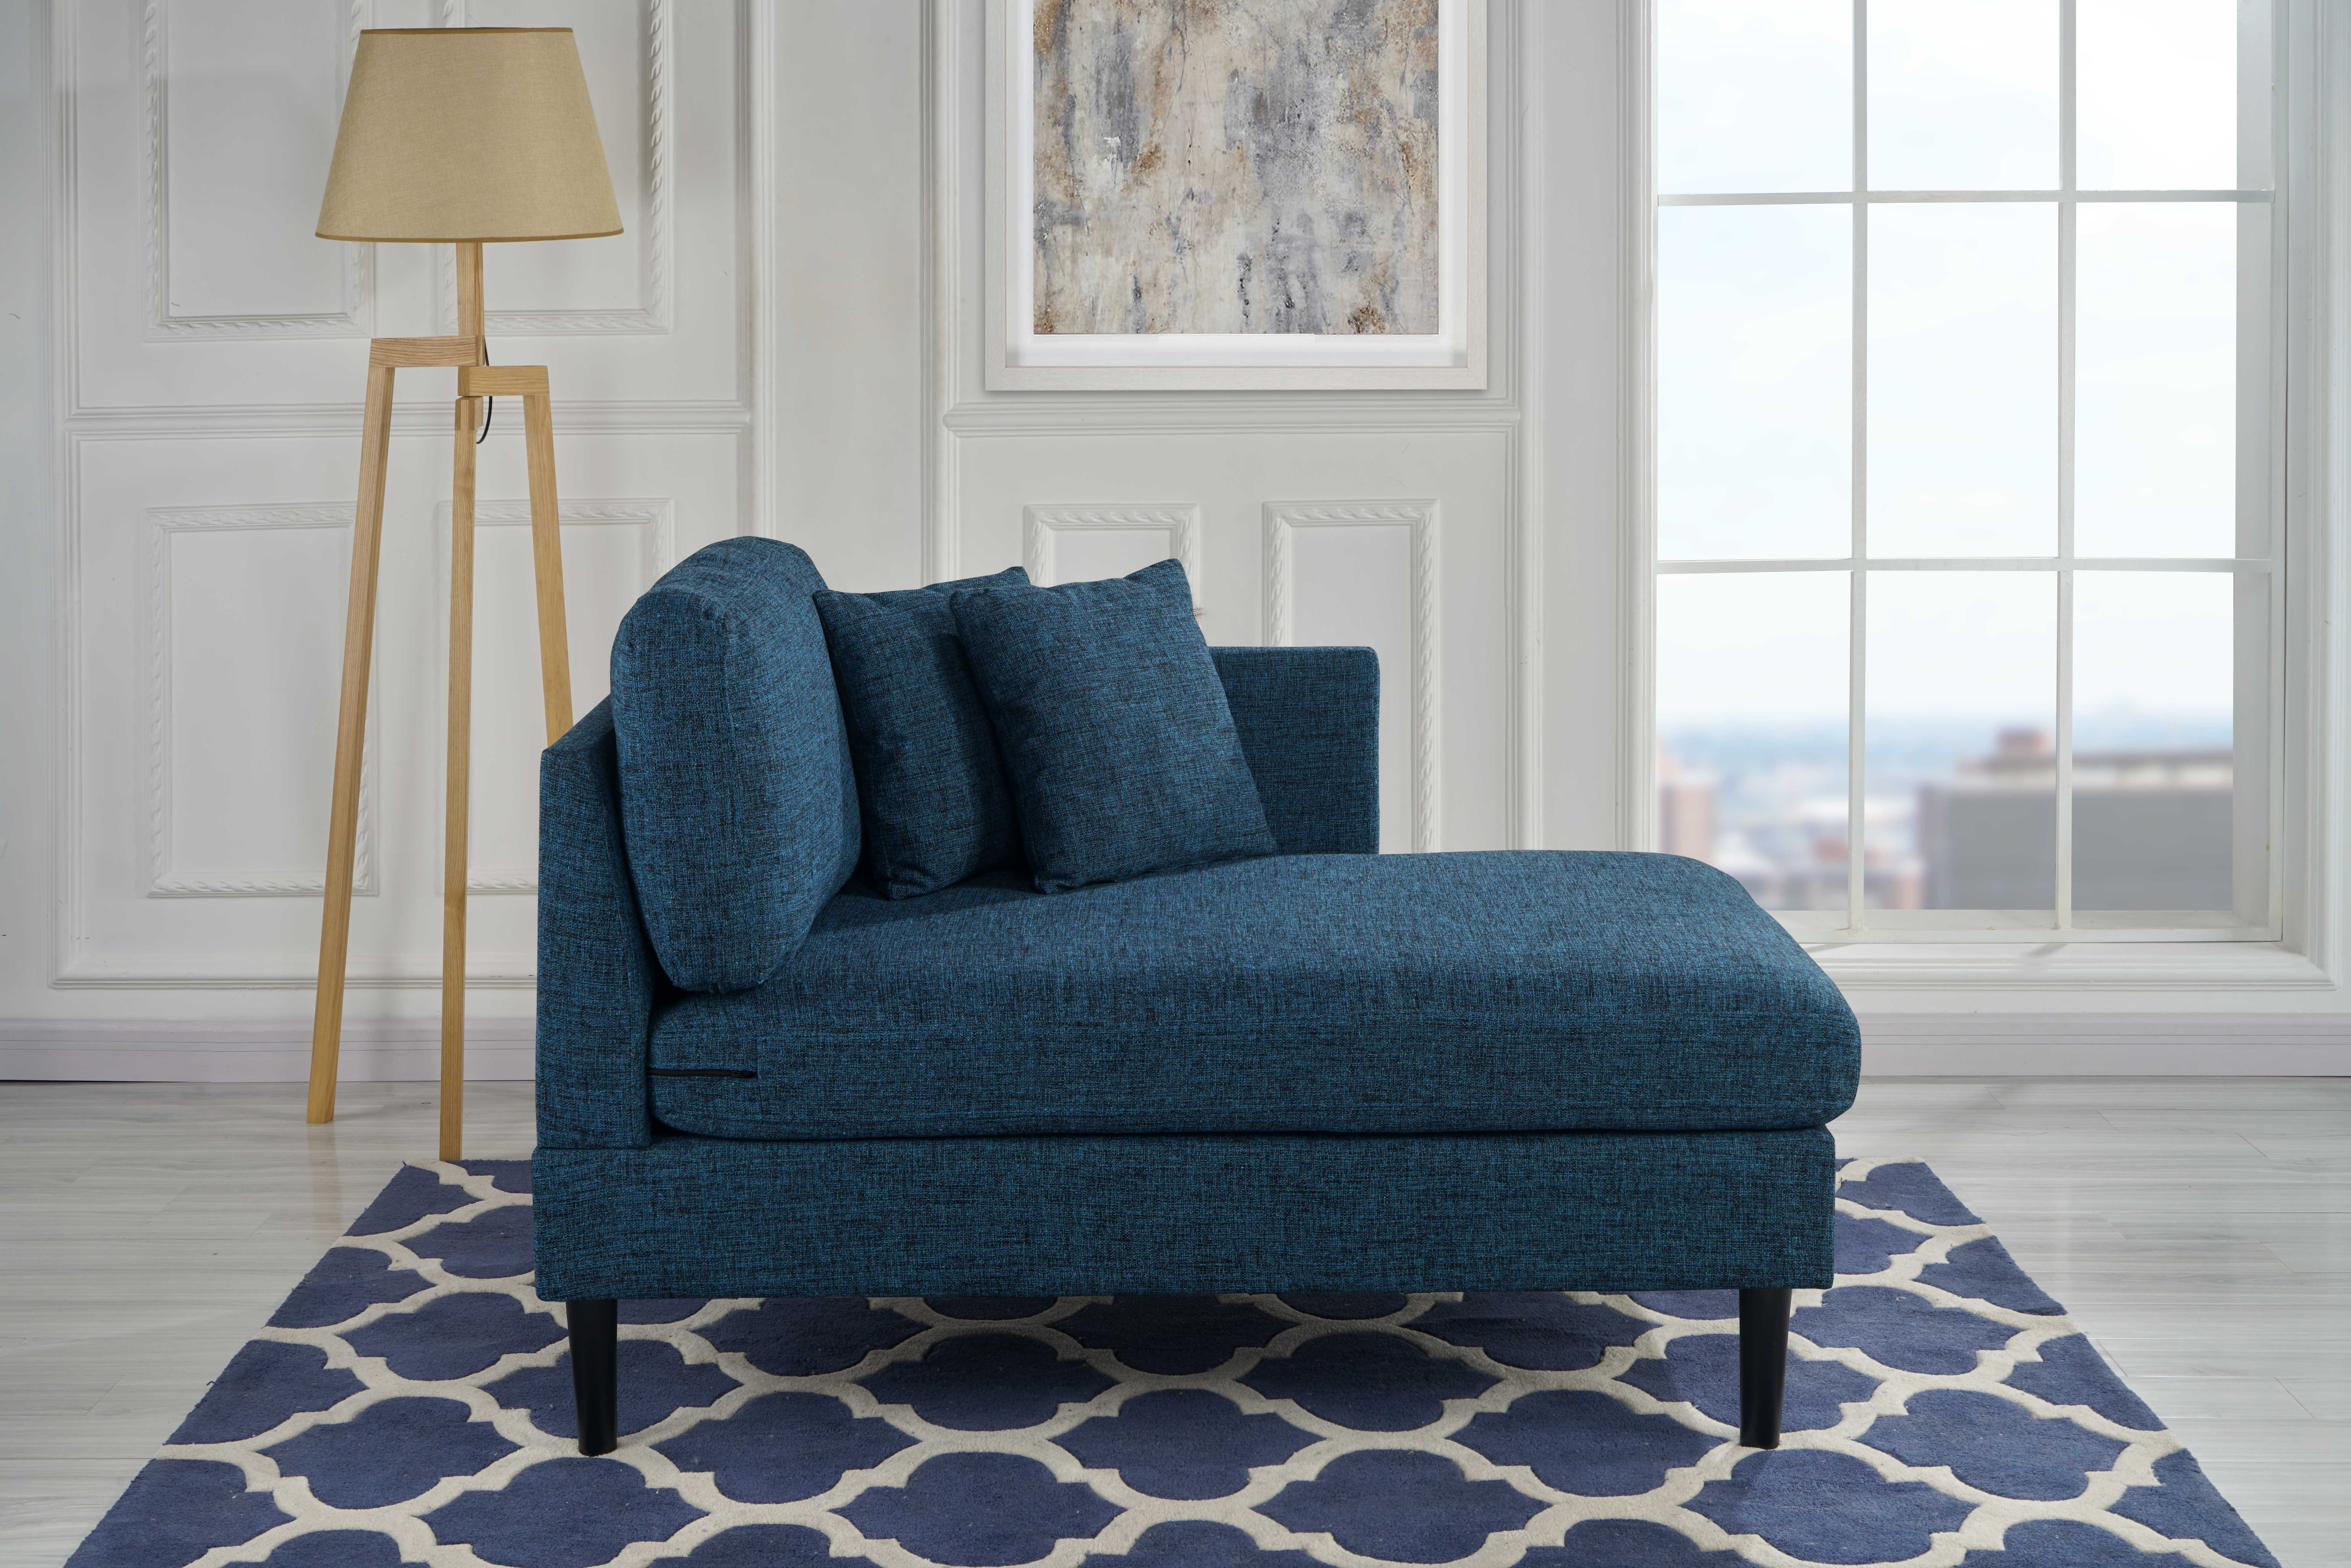 Details about Classic Linen Fabric Chaise Lounge for Living Room/Bedroom  (Blue)